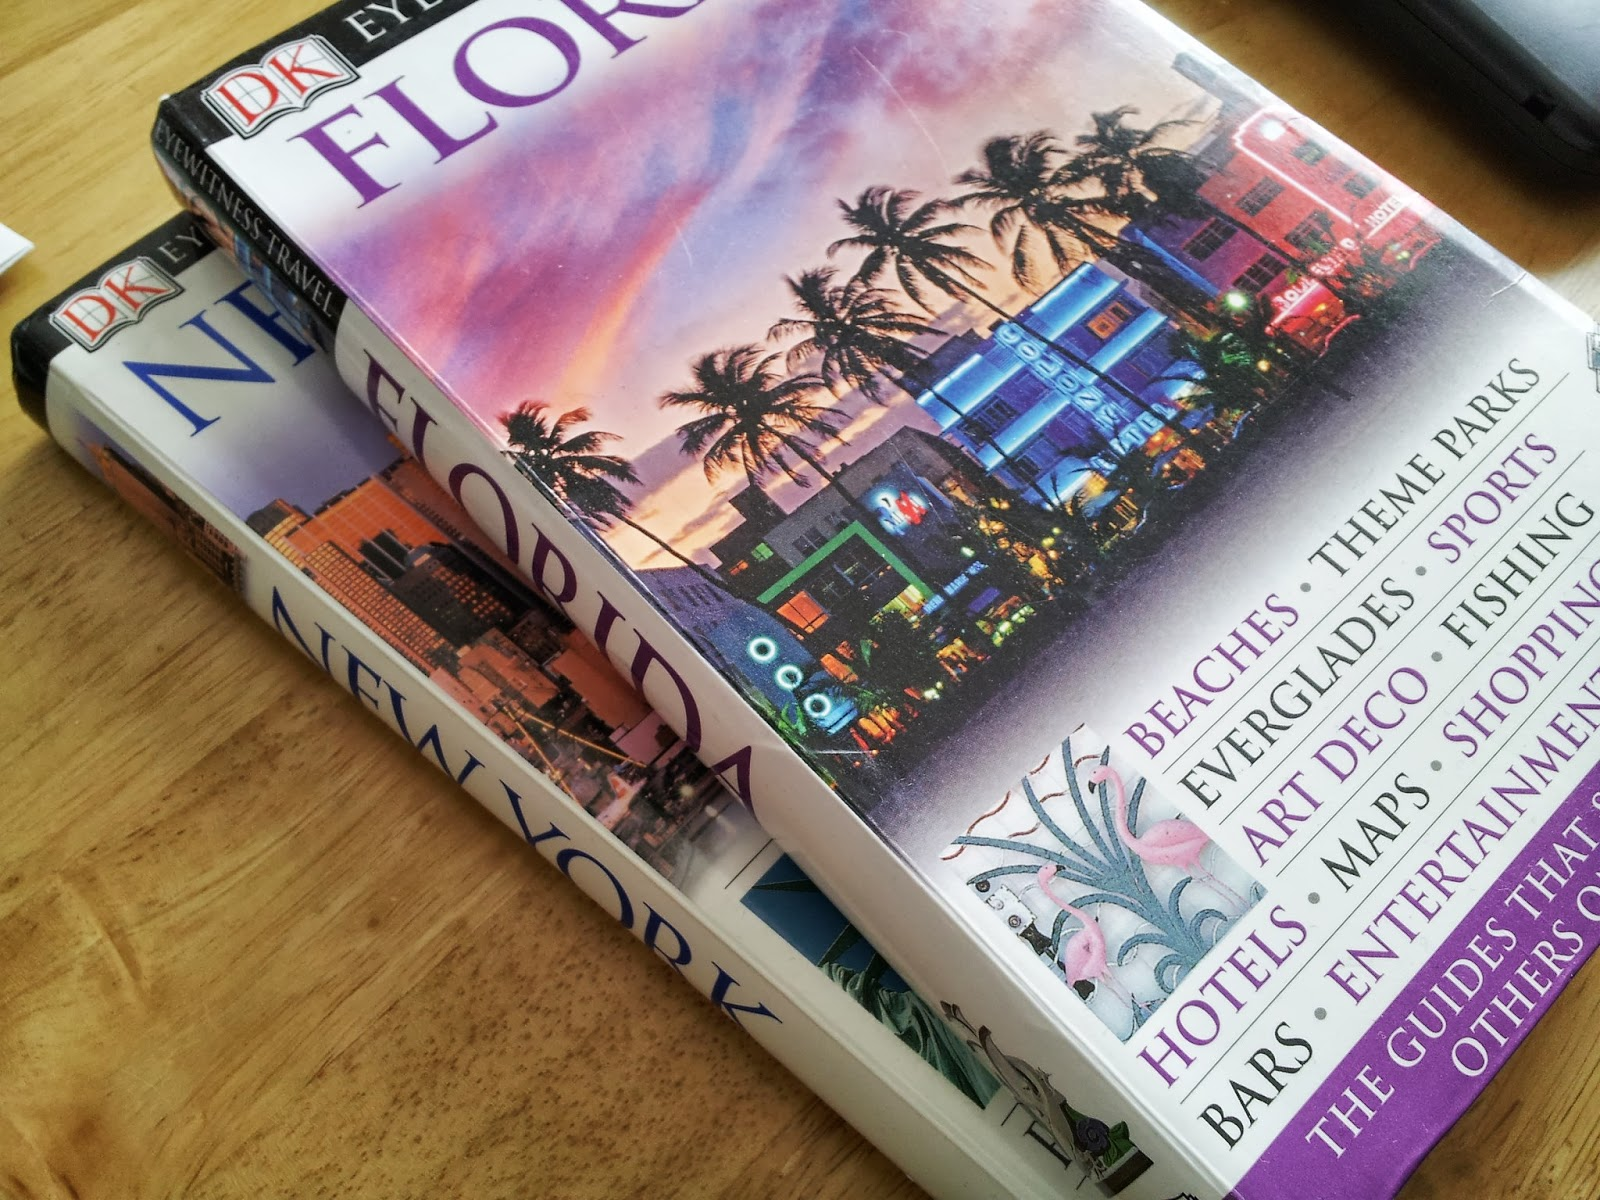 Travel Guides - Reading and exploring Recommendation - Eyewitness